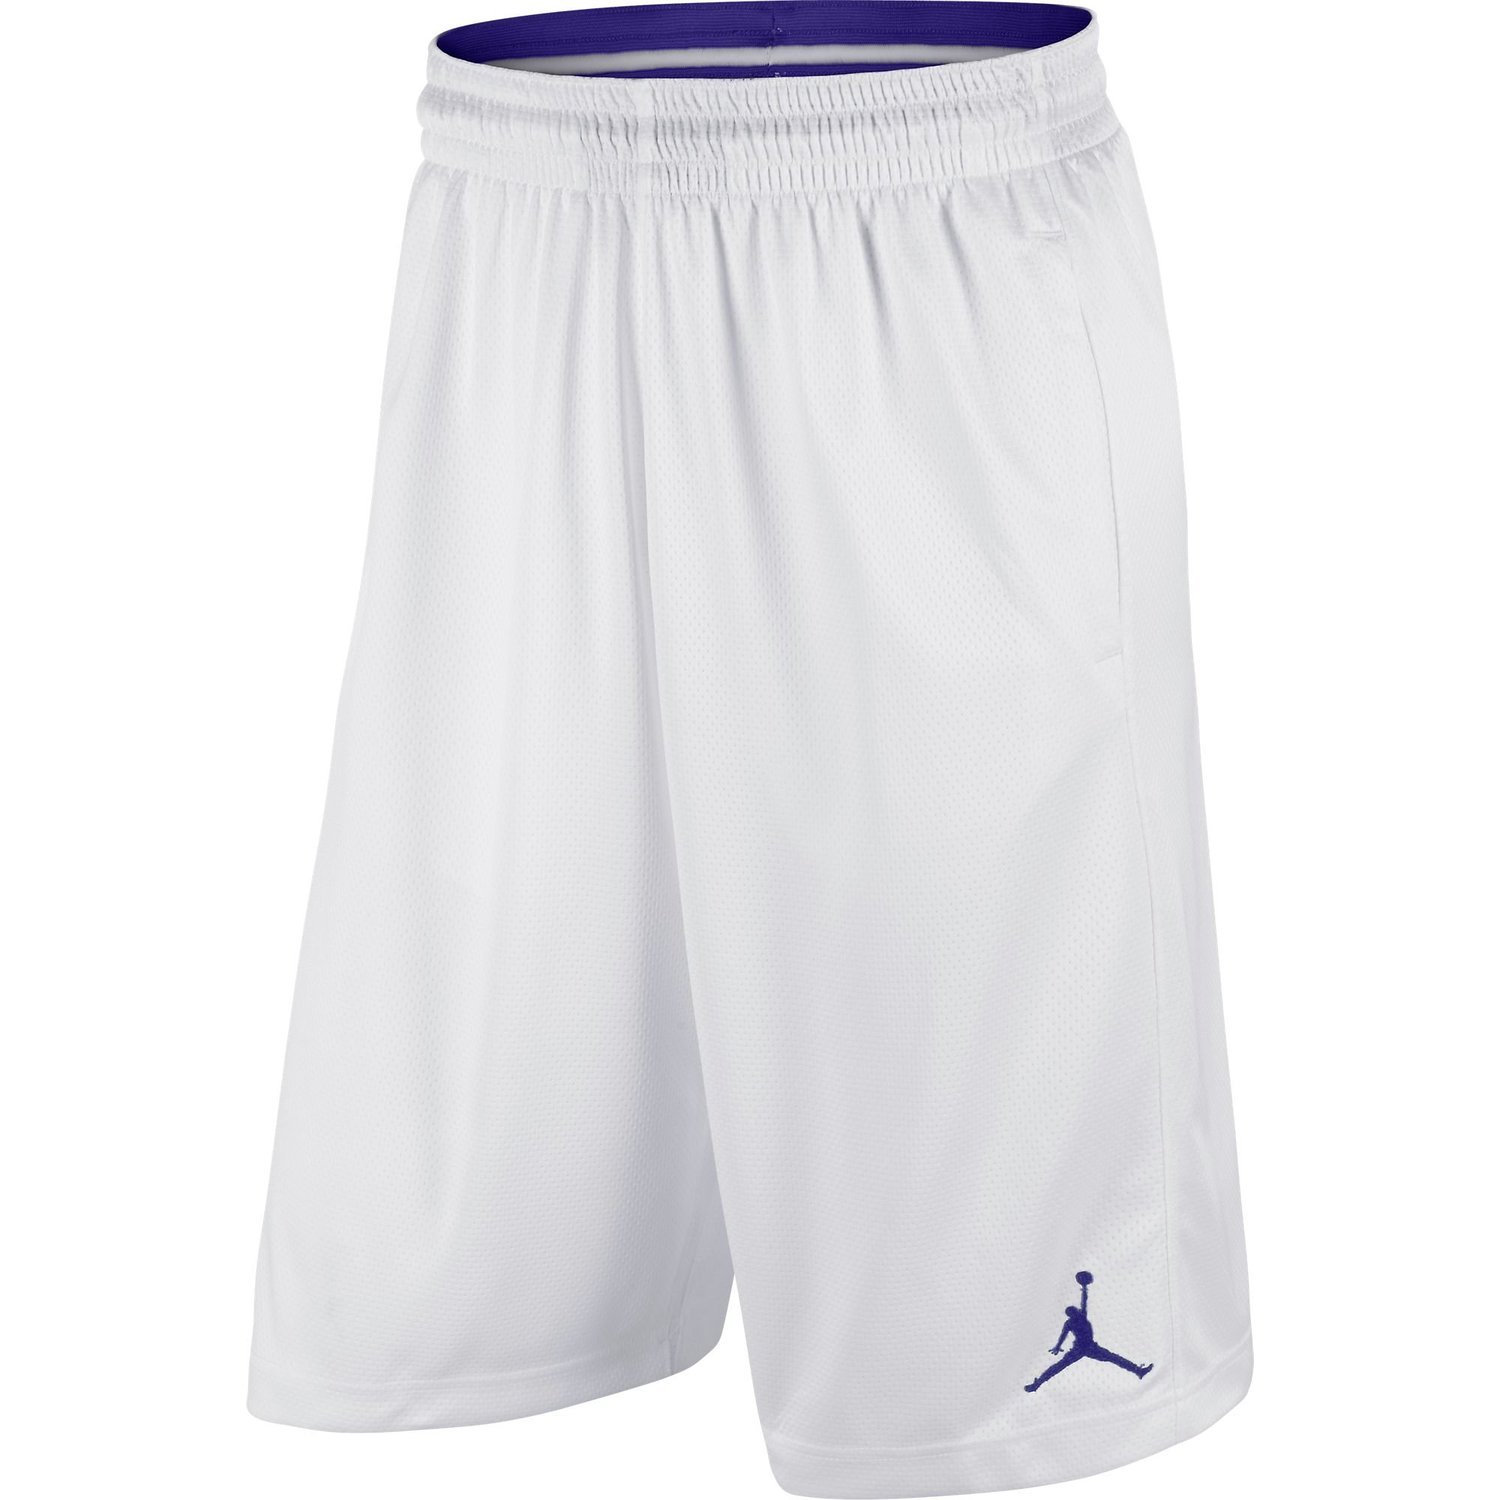 e88675ffcae Get Quotations · Jordan AJXI Men's Basketball Shorts White/German Blue  612943-100